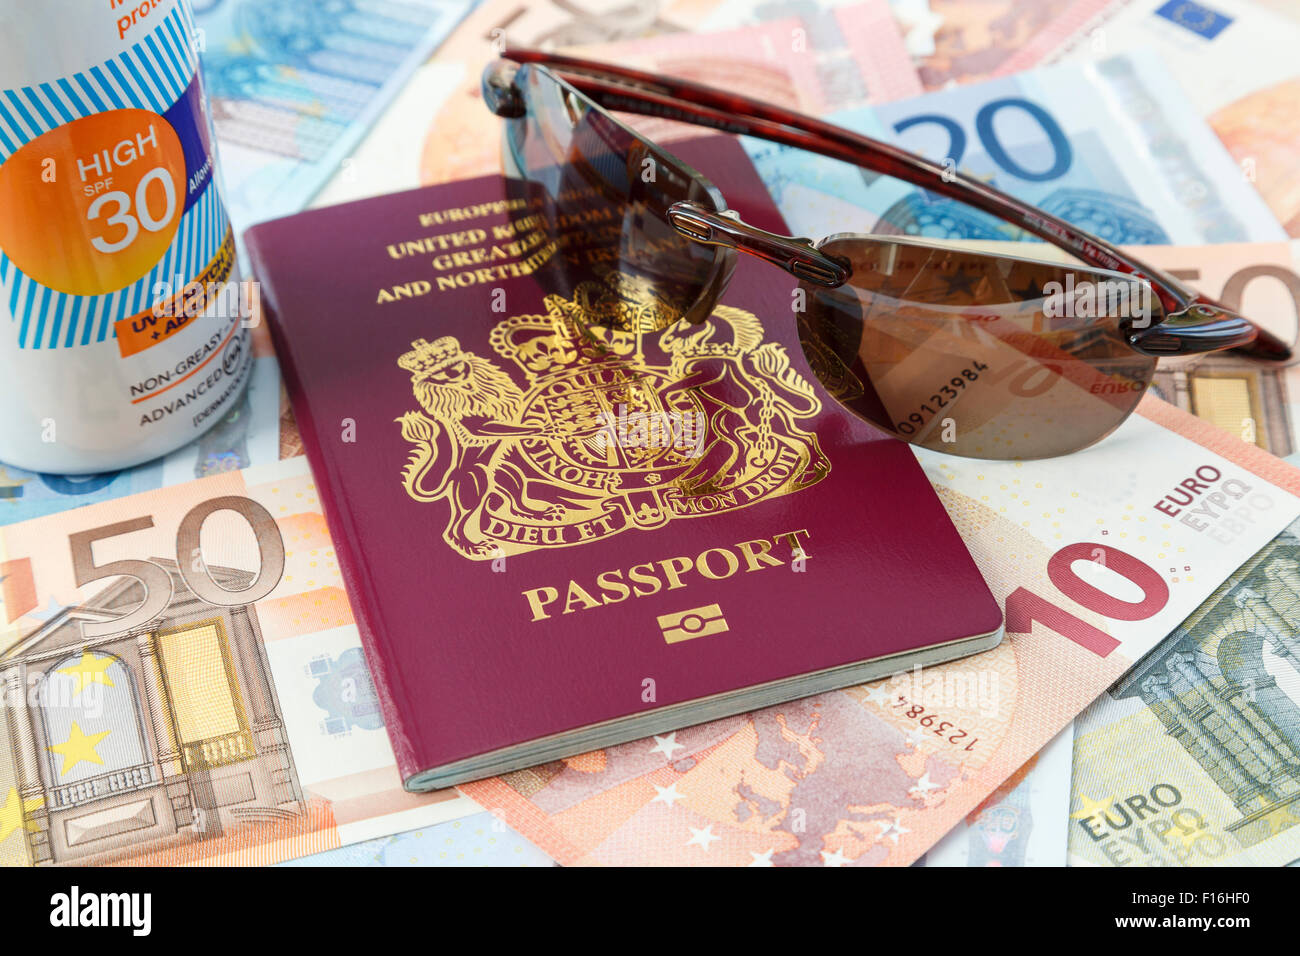 Travel things with British biometric passport Euro currency suncream and sunglasses for travelling to Eurozone countries Stock Photo